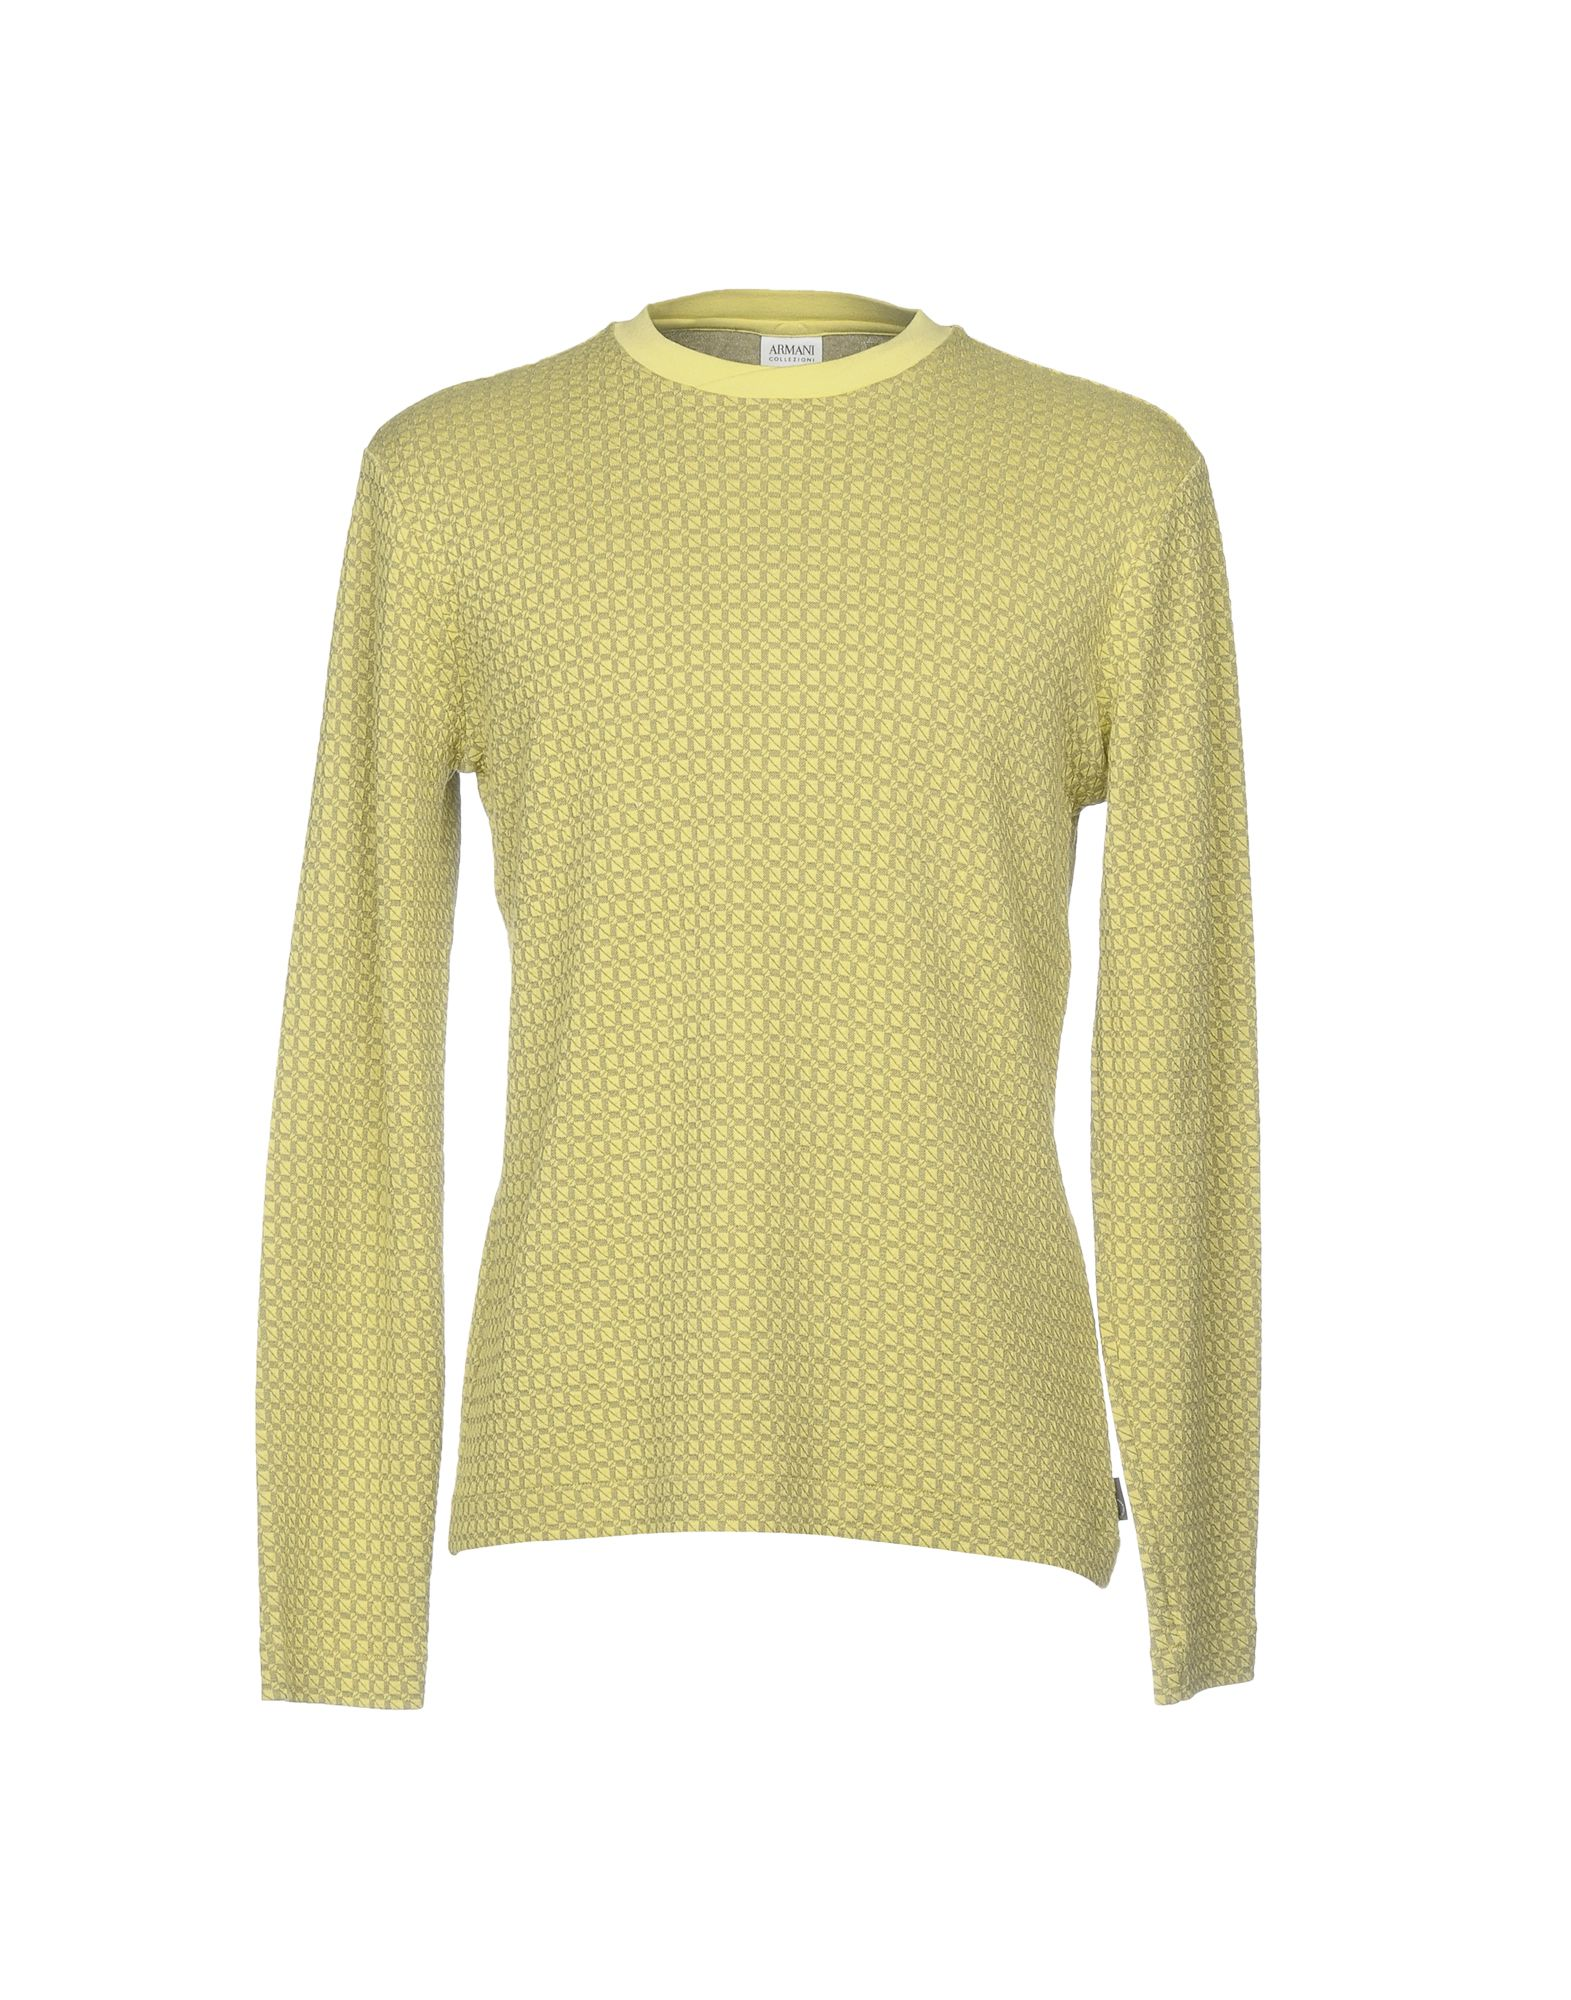 Armani Collezioni Sweater In Acid Green   ModeSens be5d1d87b4